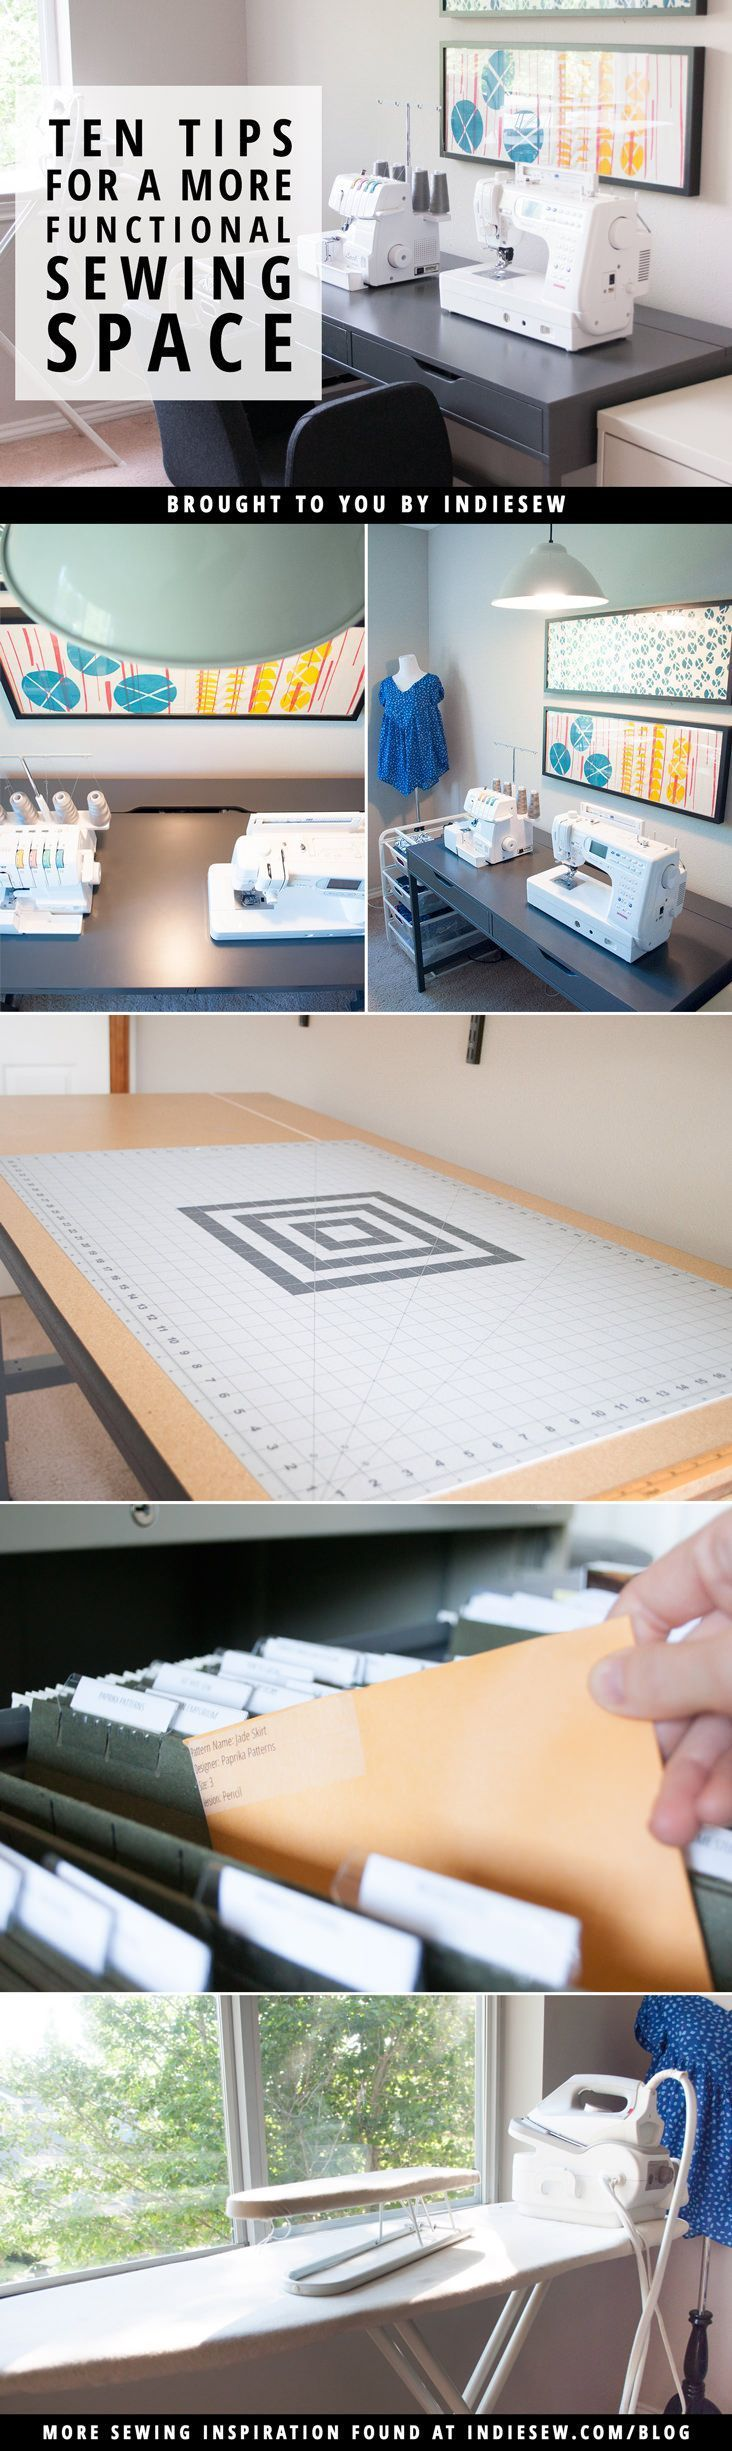 Spruce up your creative space with these ten tips for a more functional sewing room!   Indiesew.com